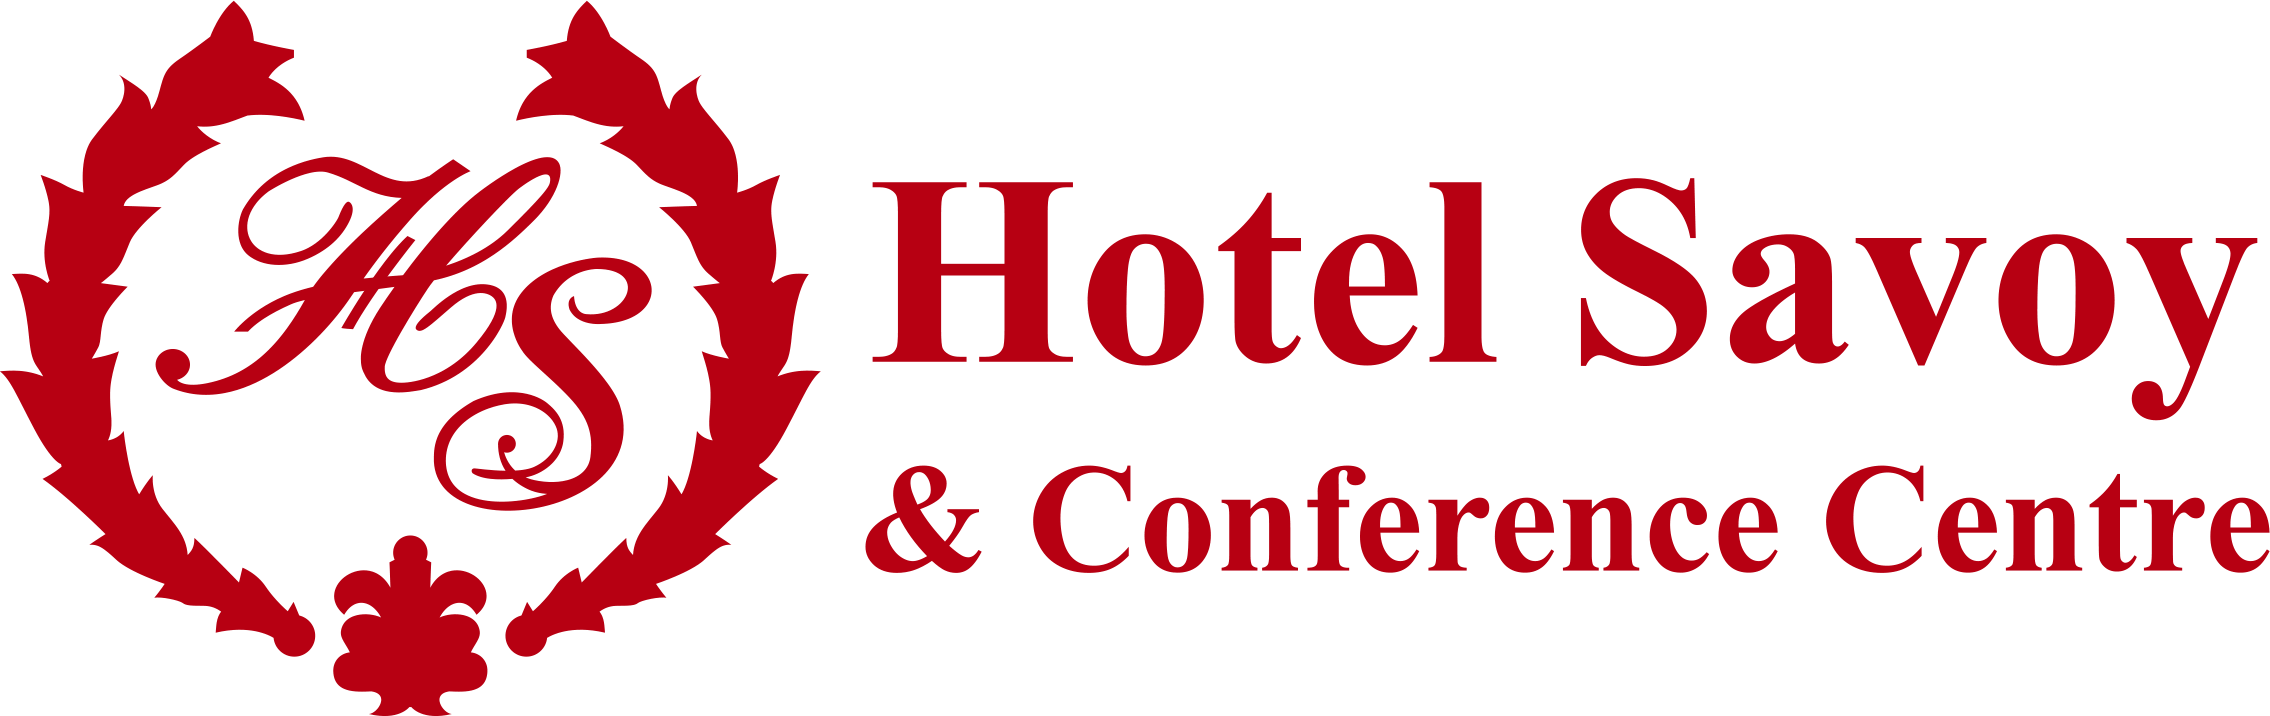 Hotel Savoy and Conference Centre Mthatha Logo